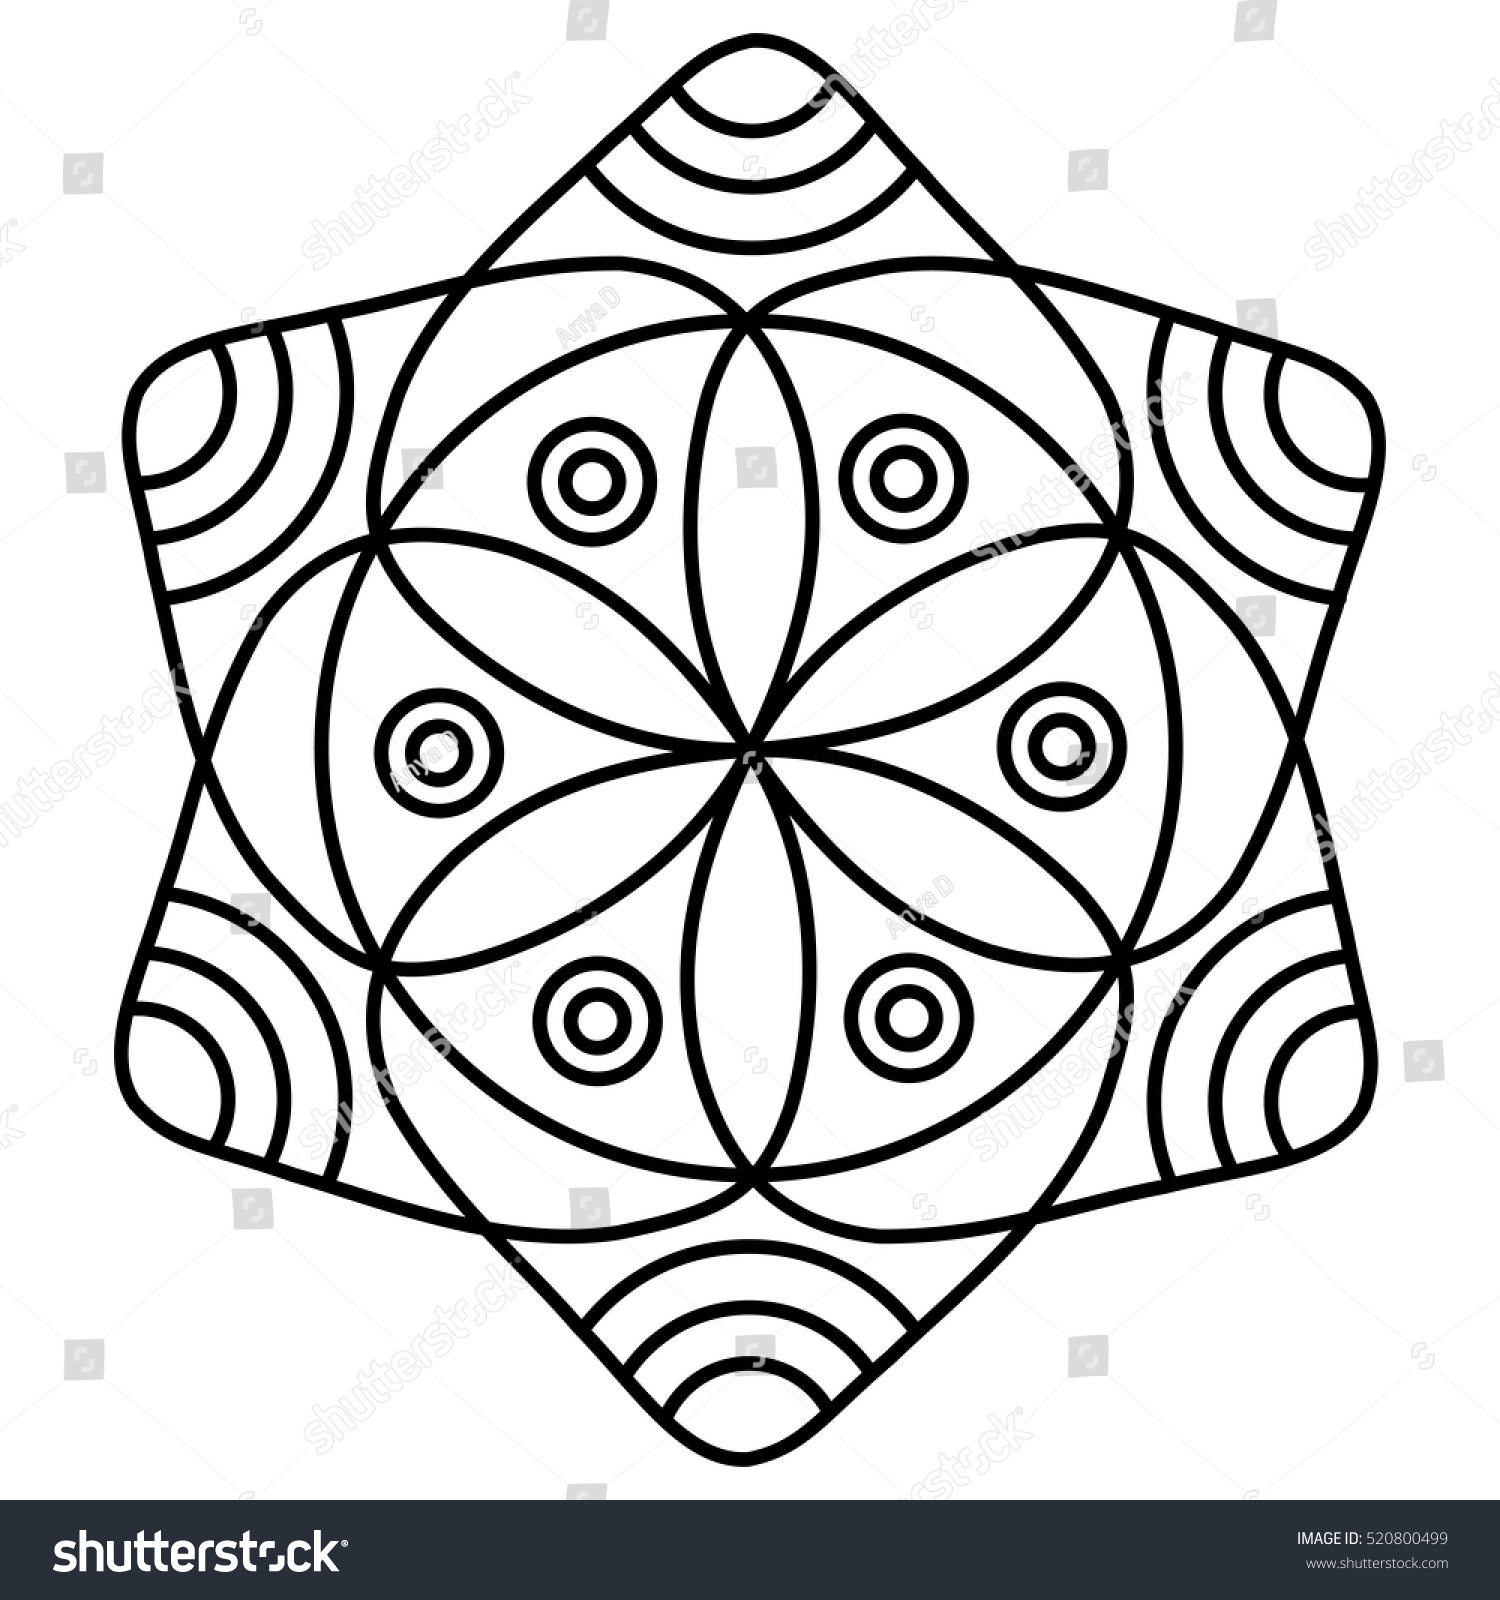 simple flower mandala pattern coloring book stock vector 520800499 shutterstock. Black Bedroom Furniture Sets. Home Design Ideas